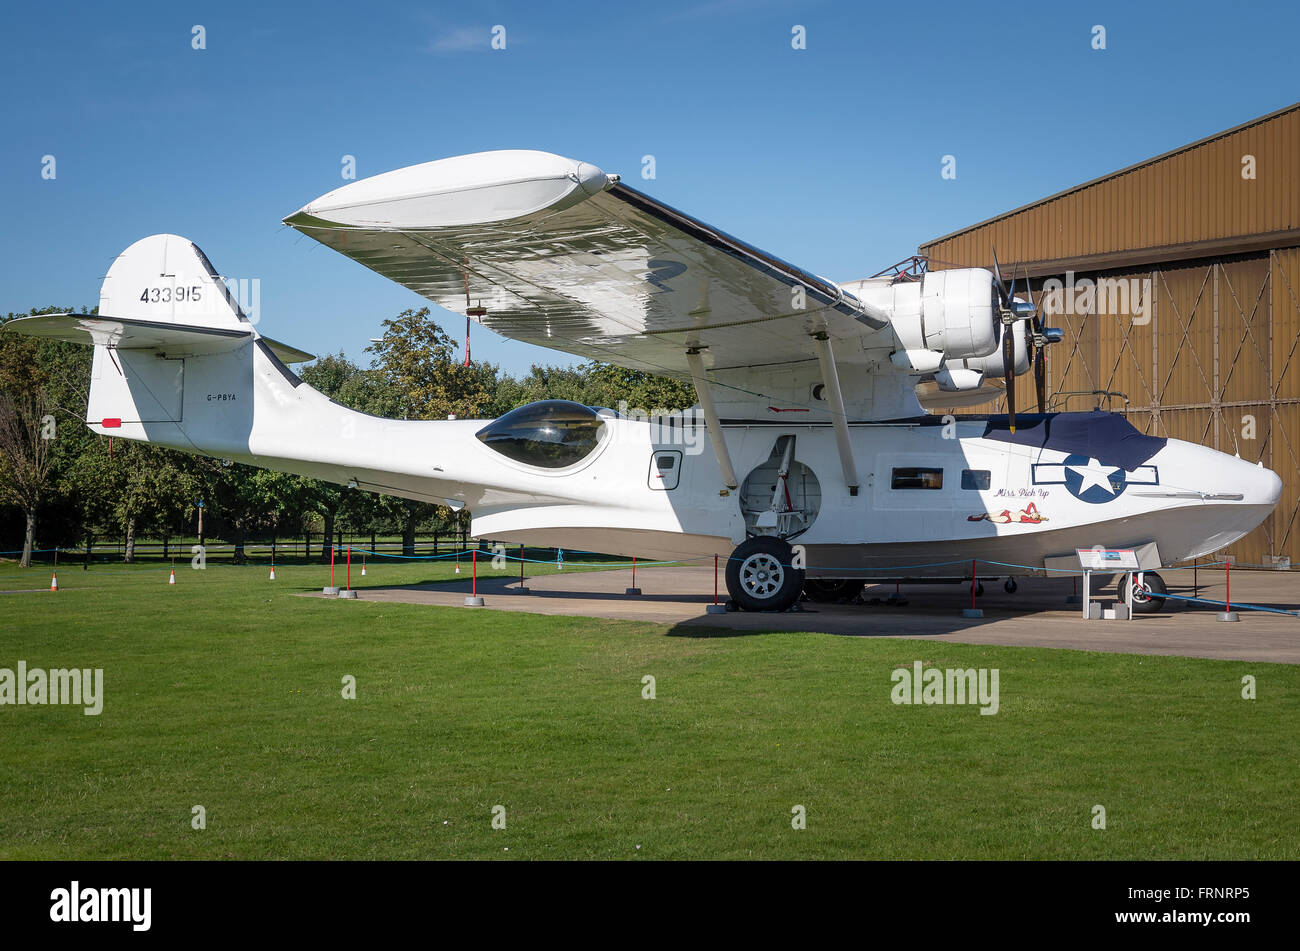 Consolidated Catalina aircraft from the 1940s - Stock Image